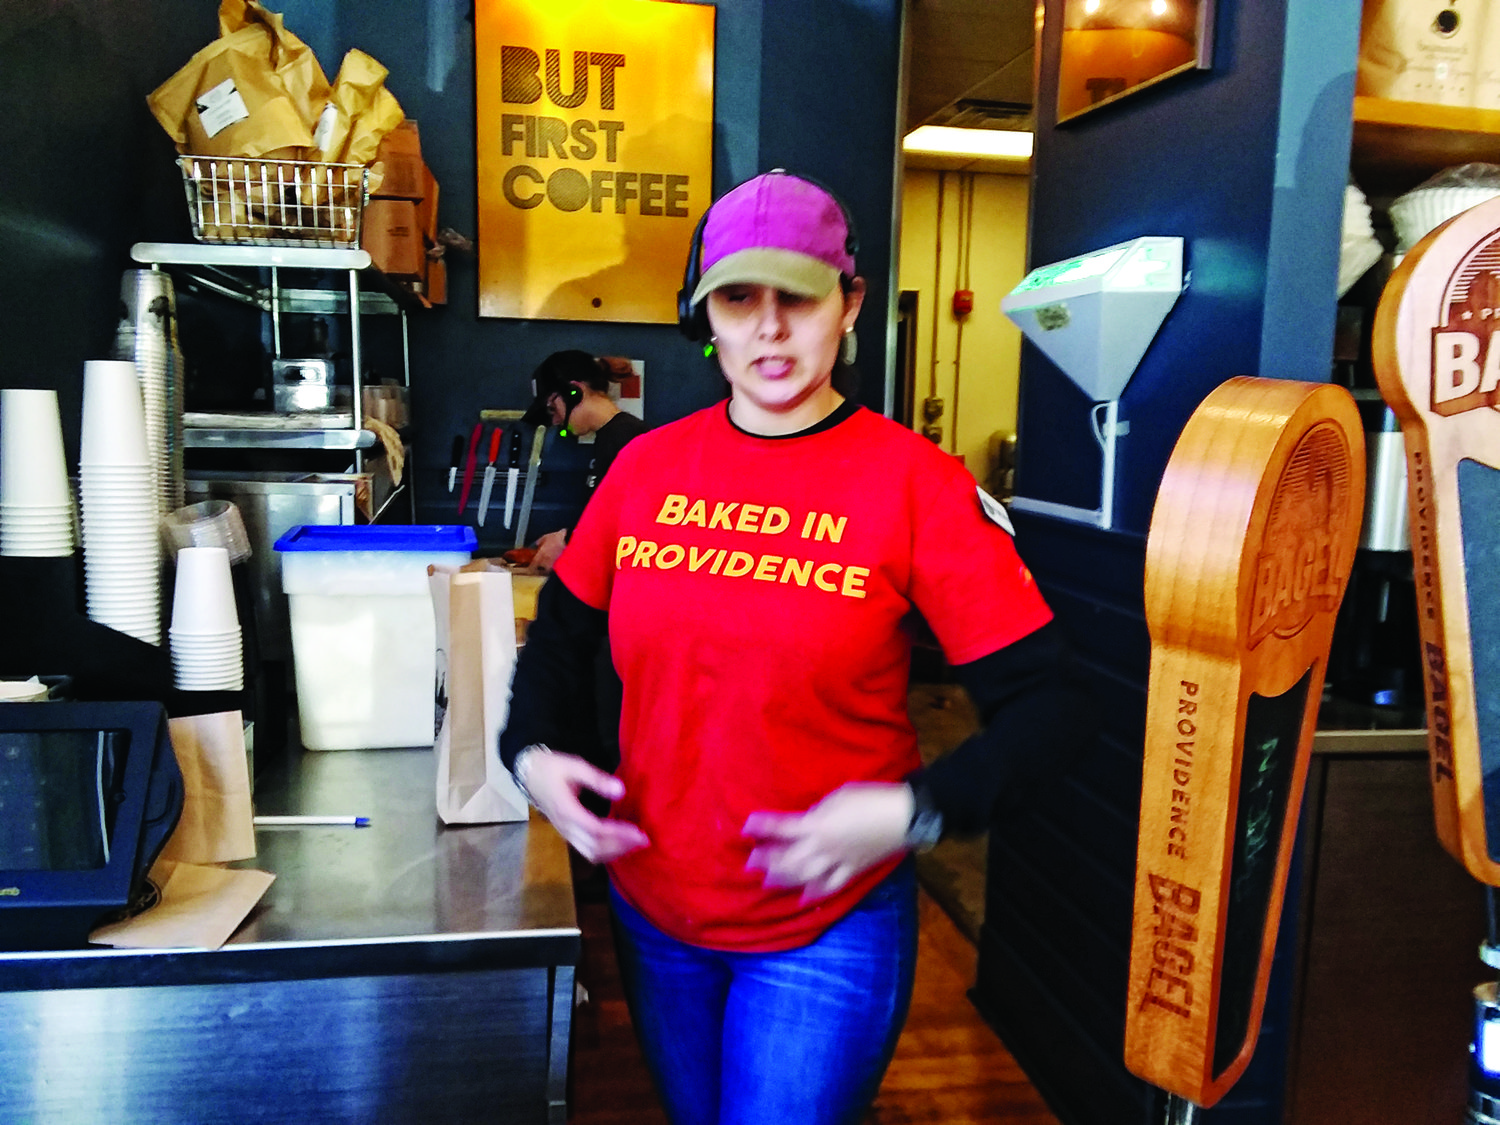 Francesca Guerra models one of the T-shirts at Providence Bagel.